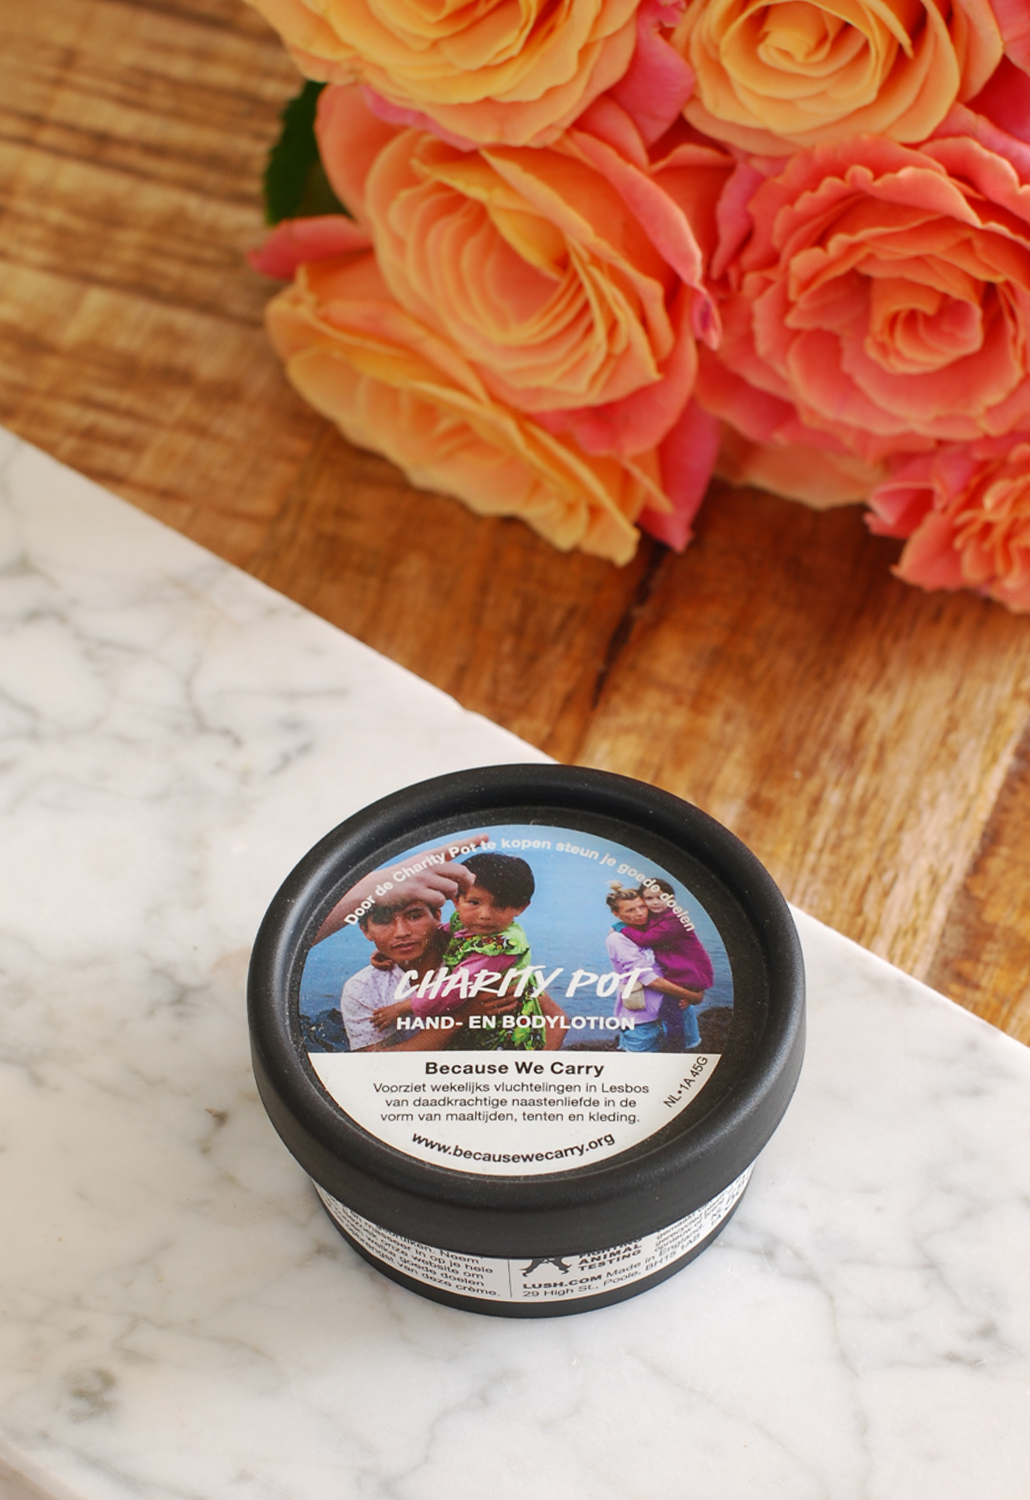 Lush Charity Pot review because we carry